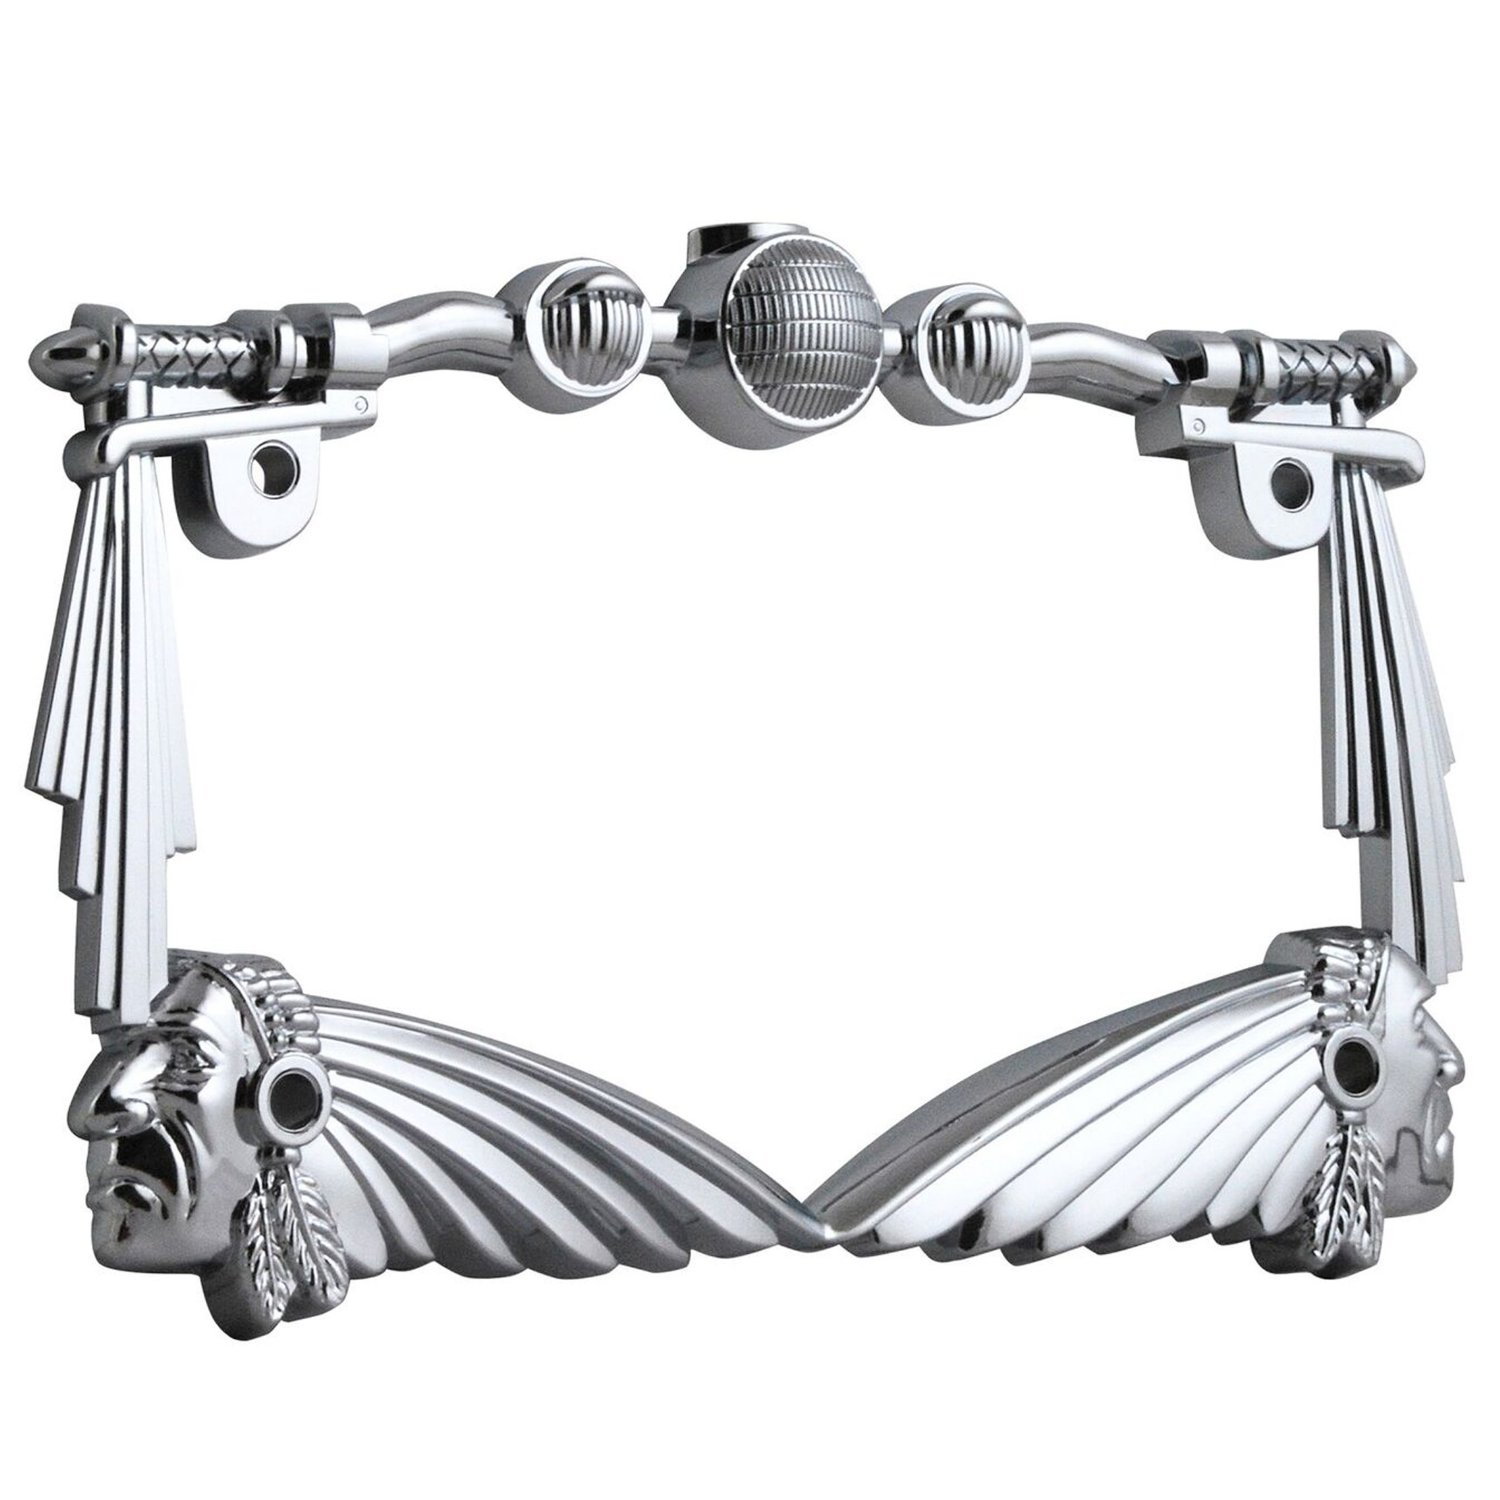 Universal 3D Indian Chief Handle Bar Chrome Motorcycle License Plate Frame